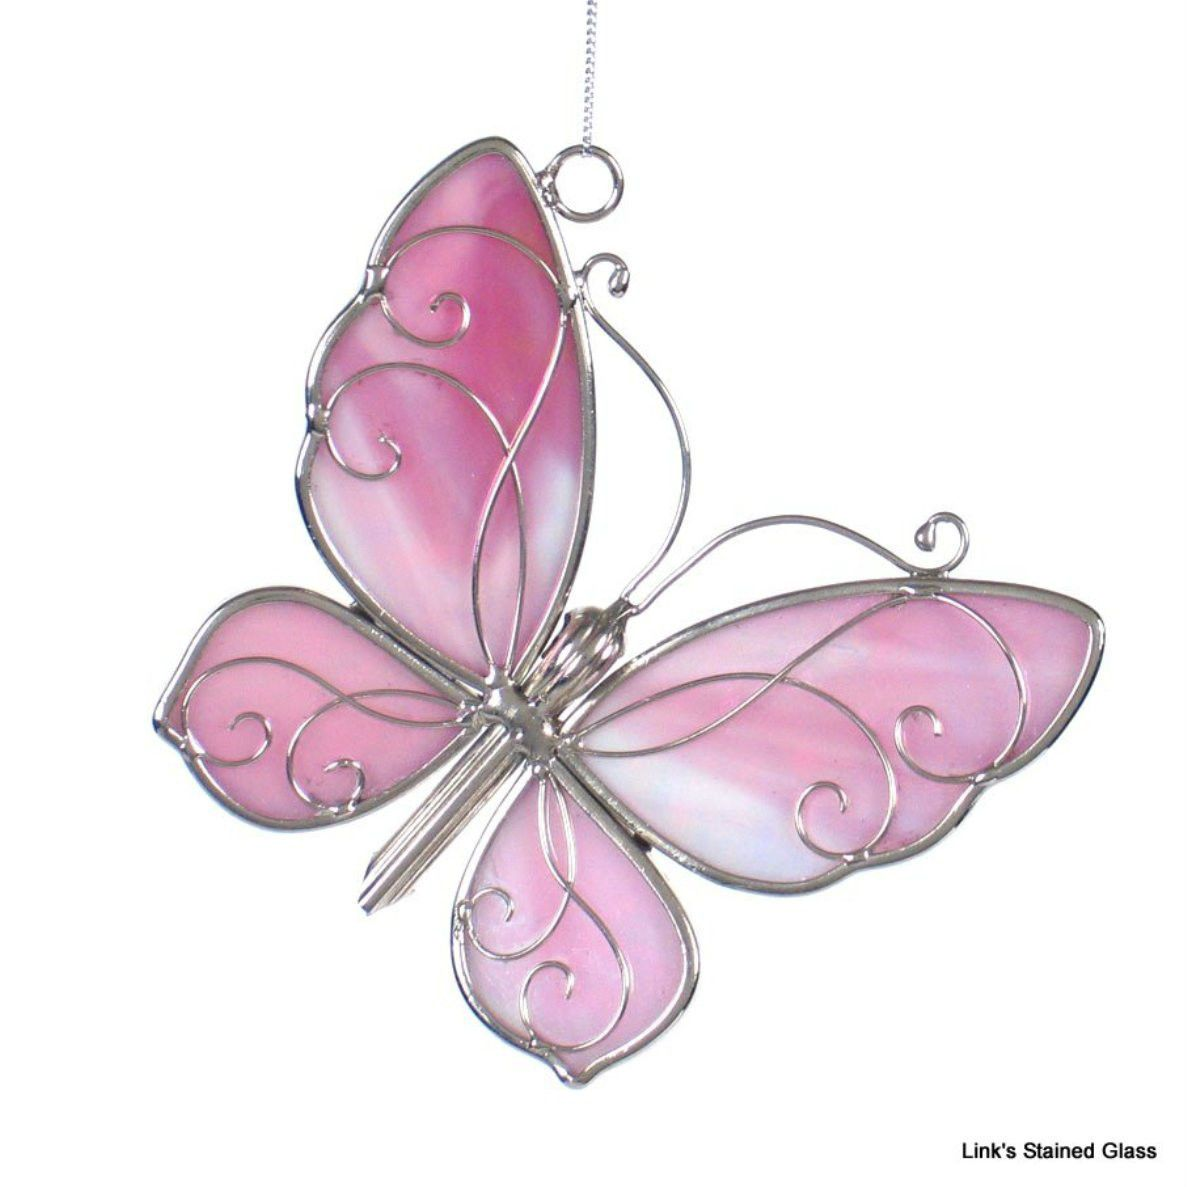 Stained Glass Pink Iridescent Butterfly sun catcher picclick.com